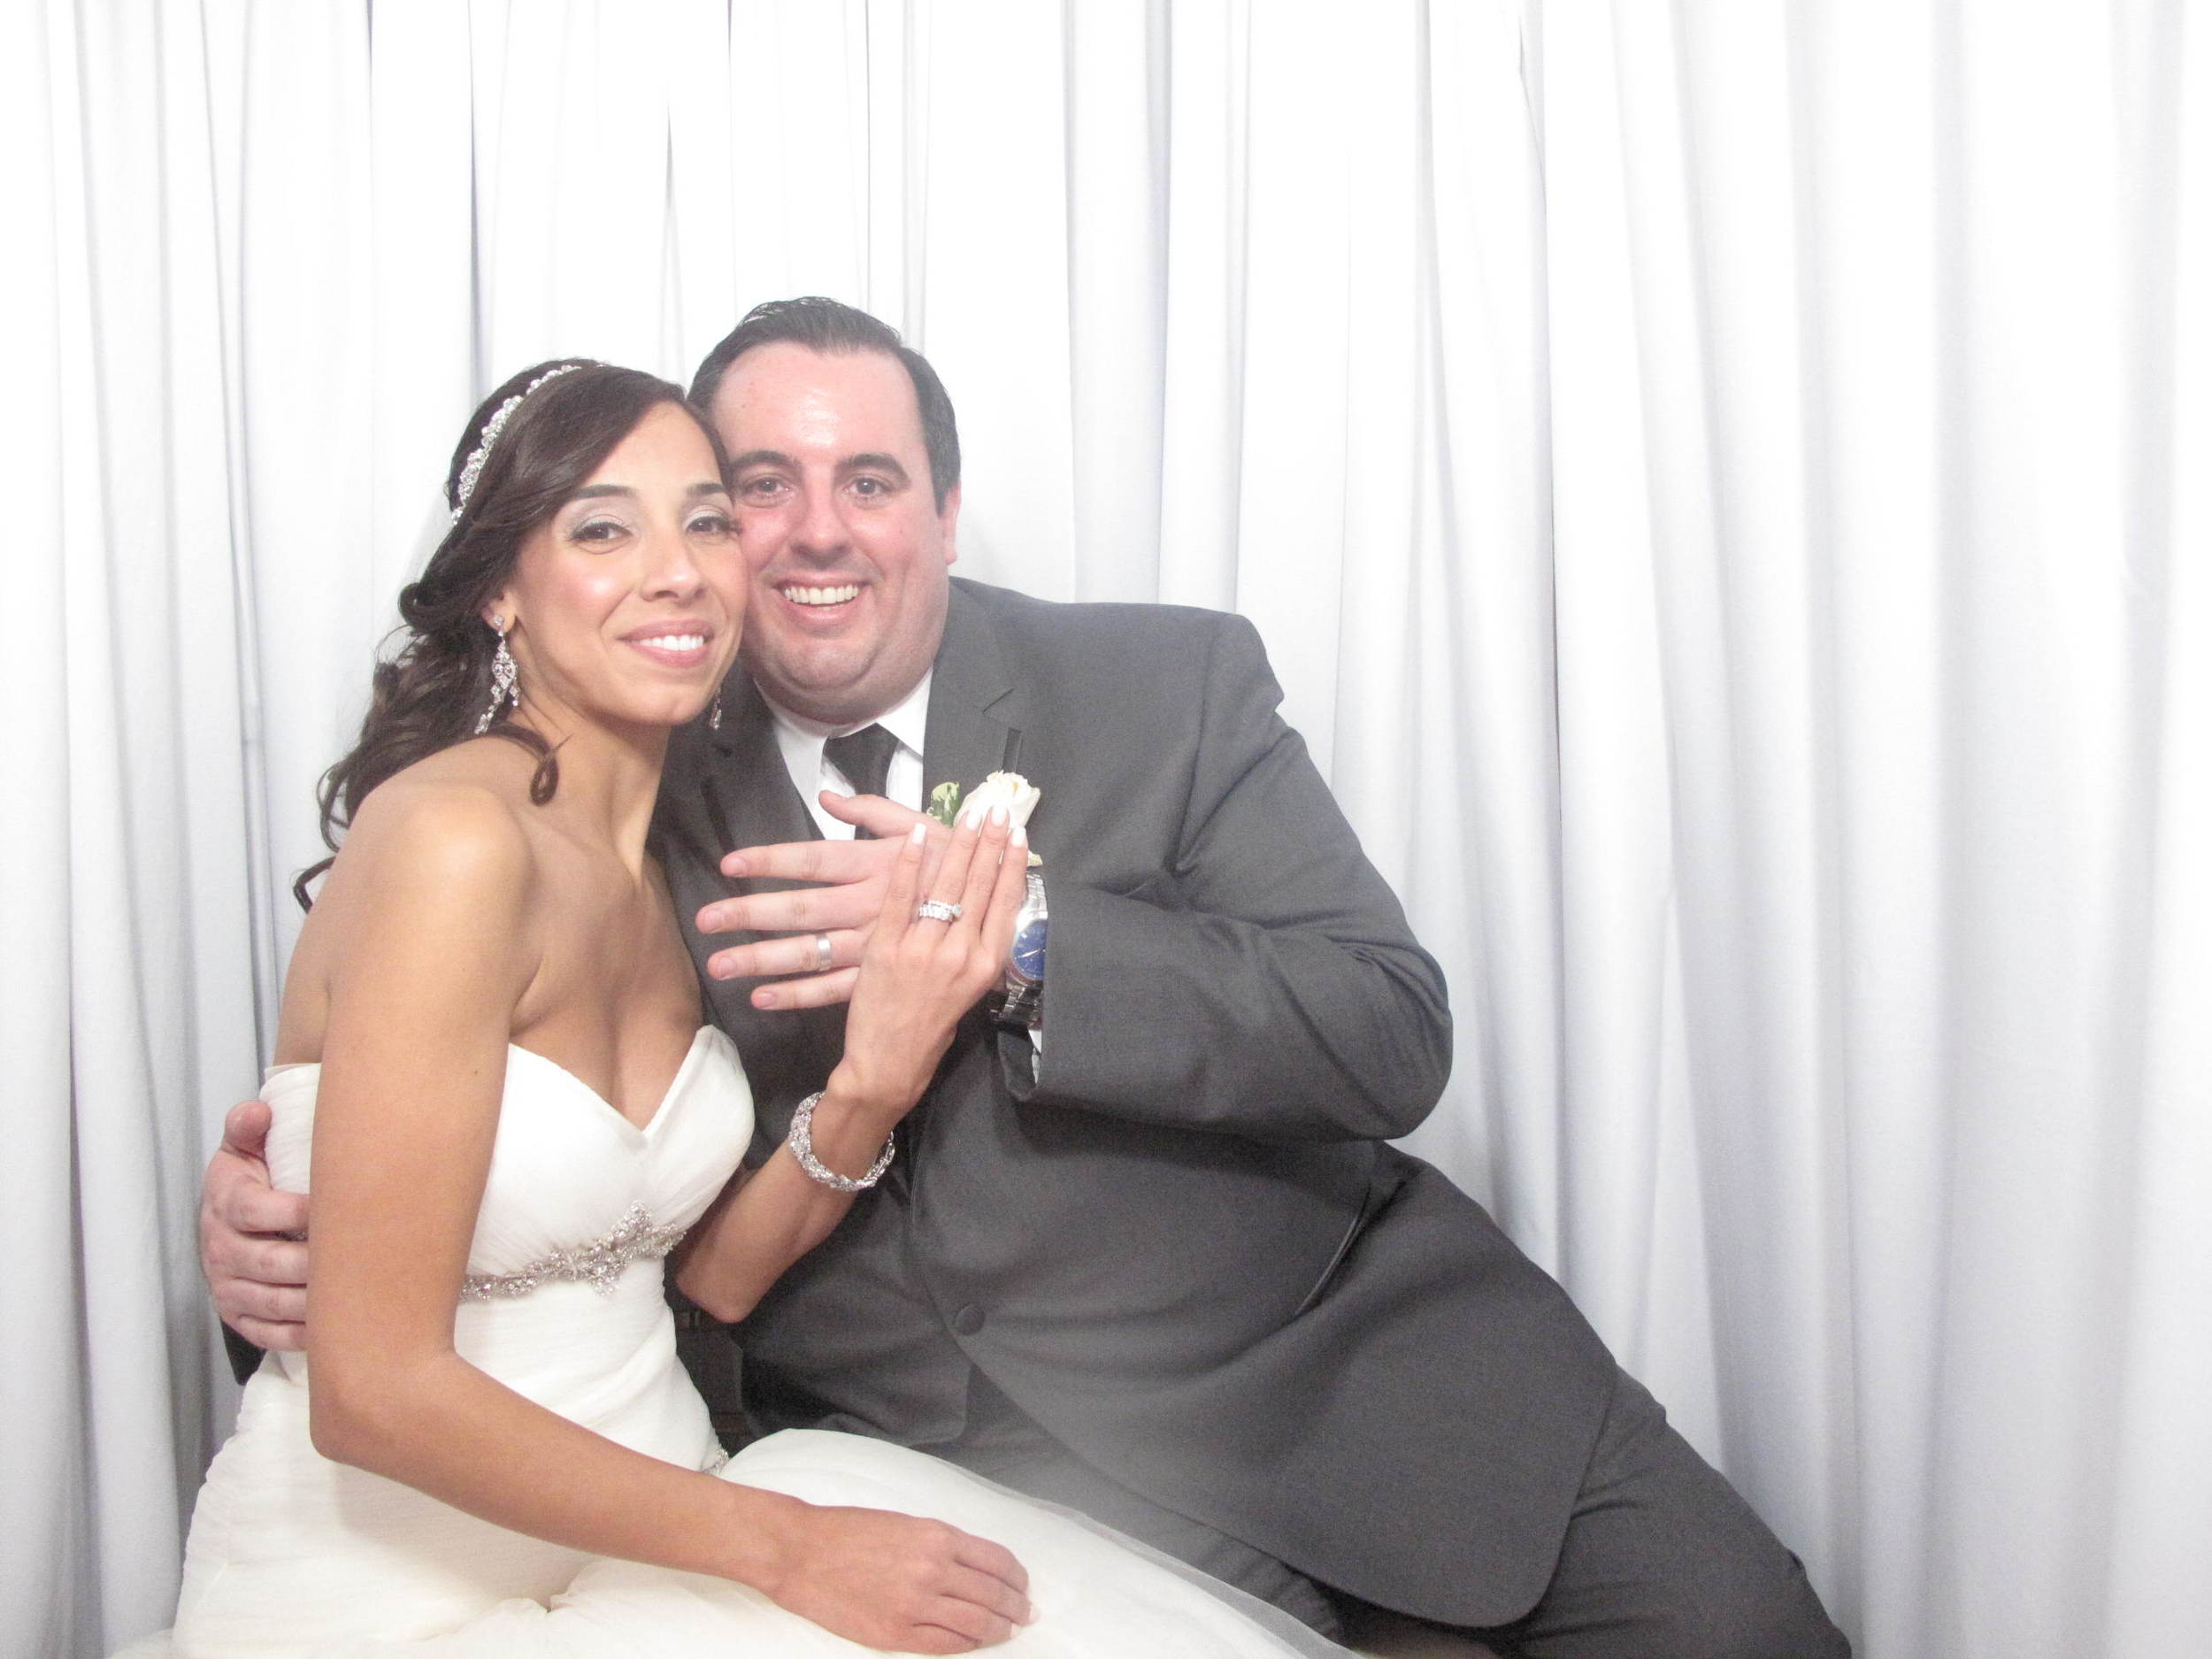 Snapshot Photobooths at the Westmount Country Club in Woodland Park, New Jersey